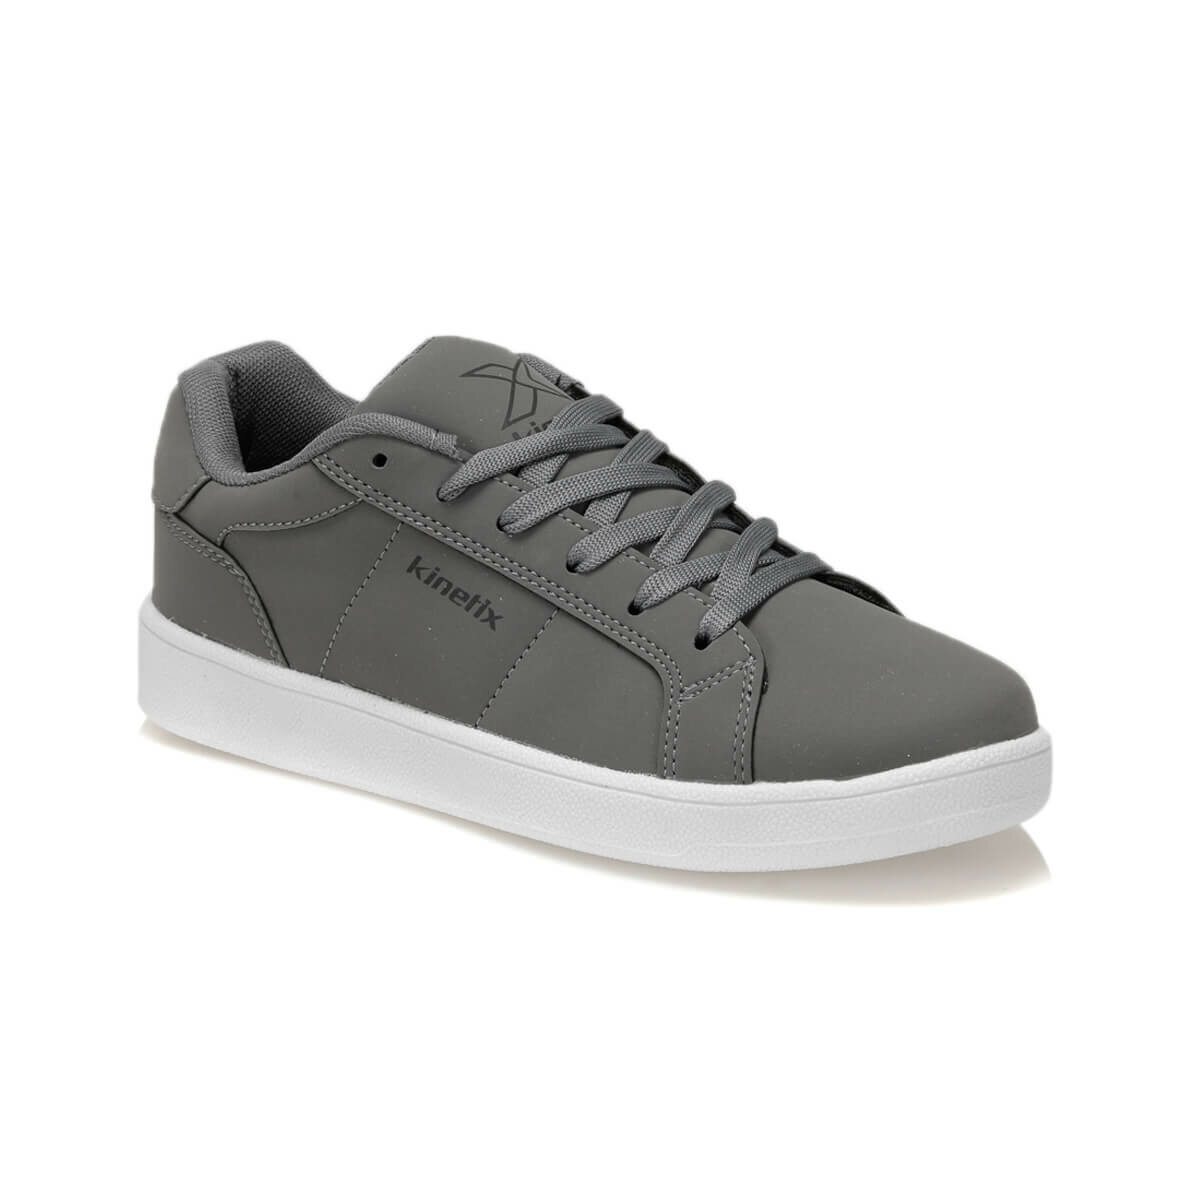 FLO FILTER M Gray Men 'S Sneaker Shoes KINETIX